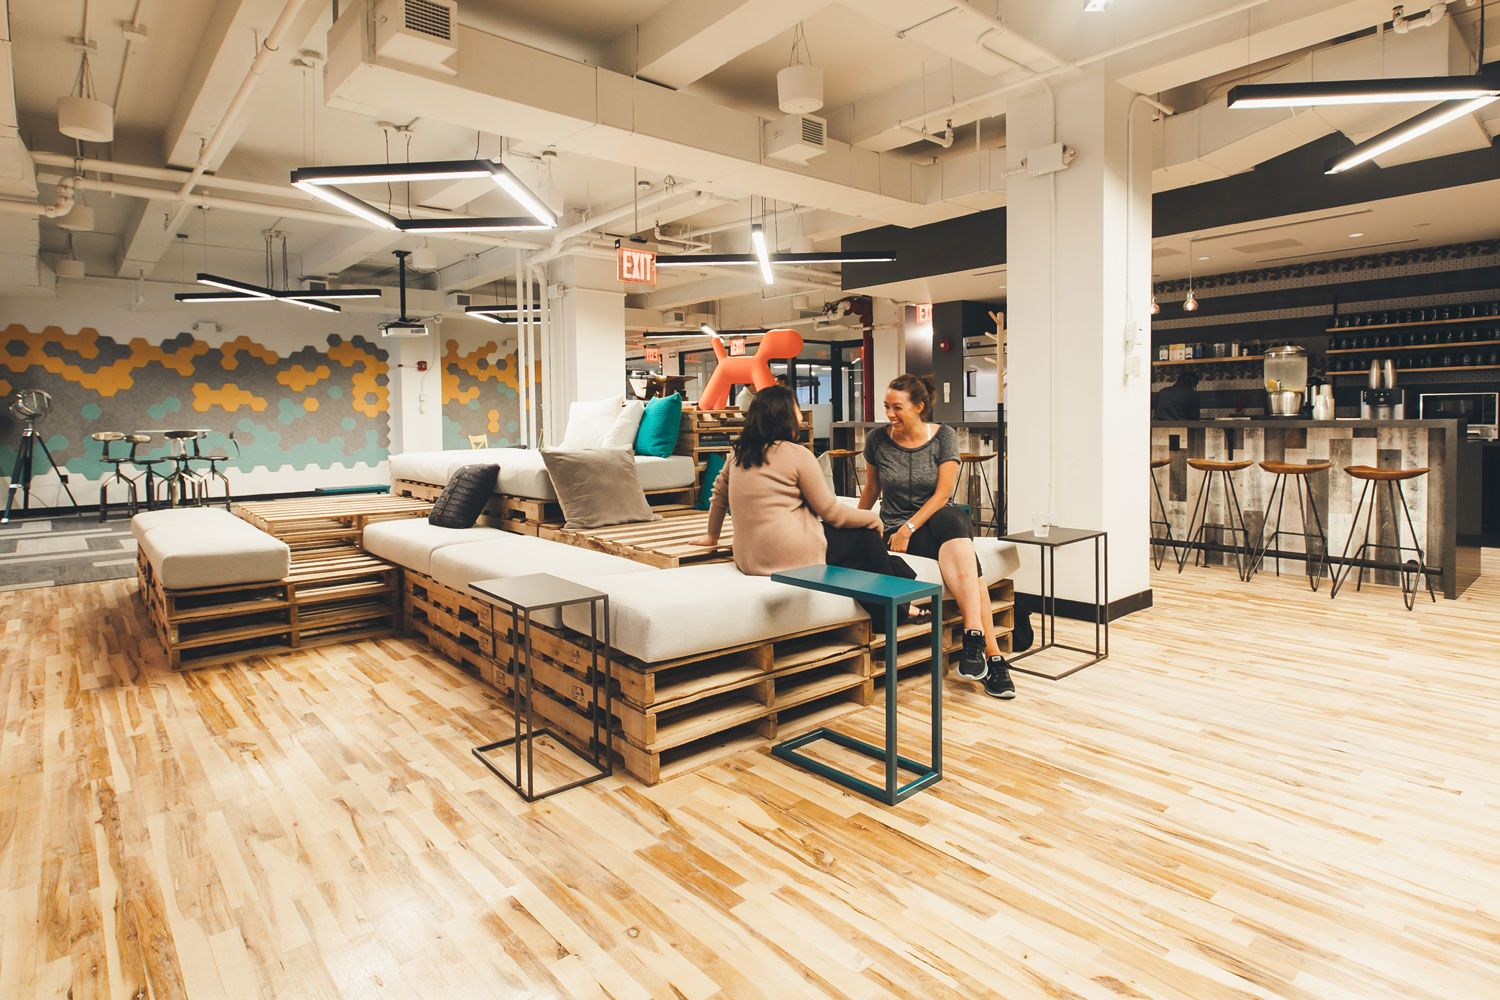 Wework Nomad 2nd Floor Lounge Imagery Coworking Space